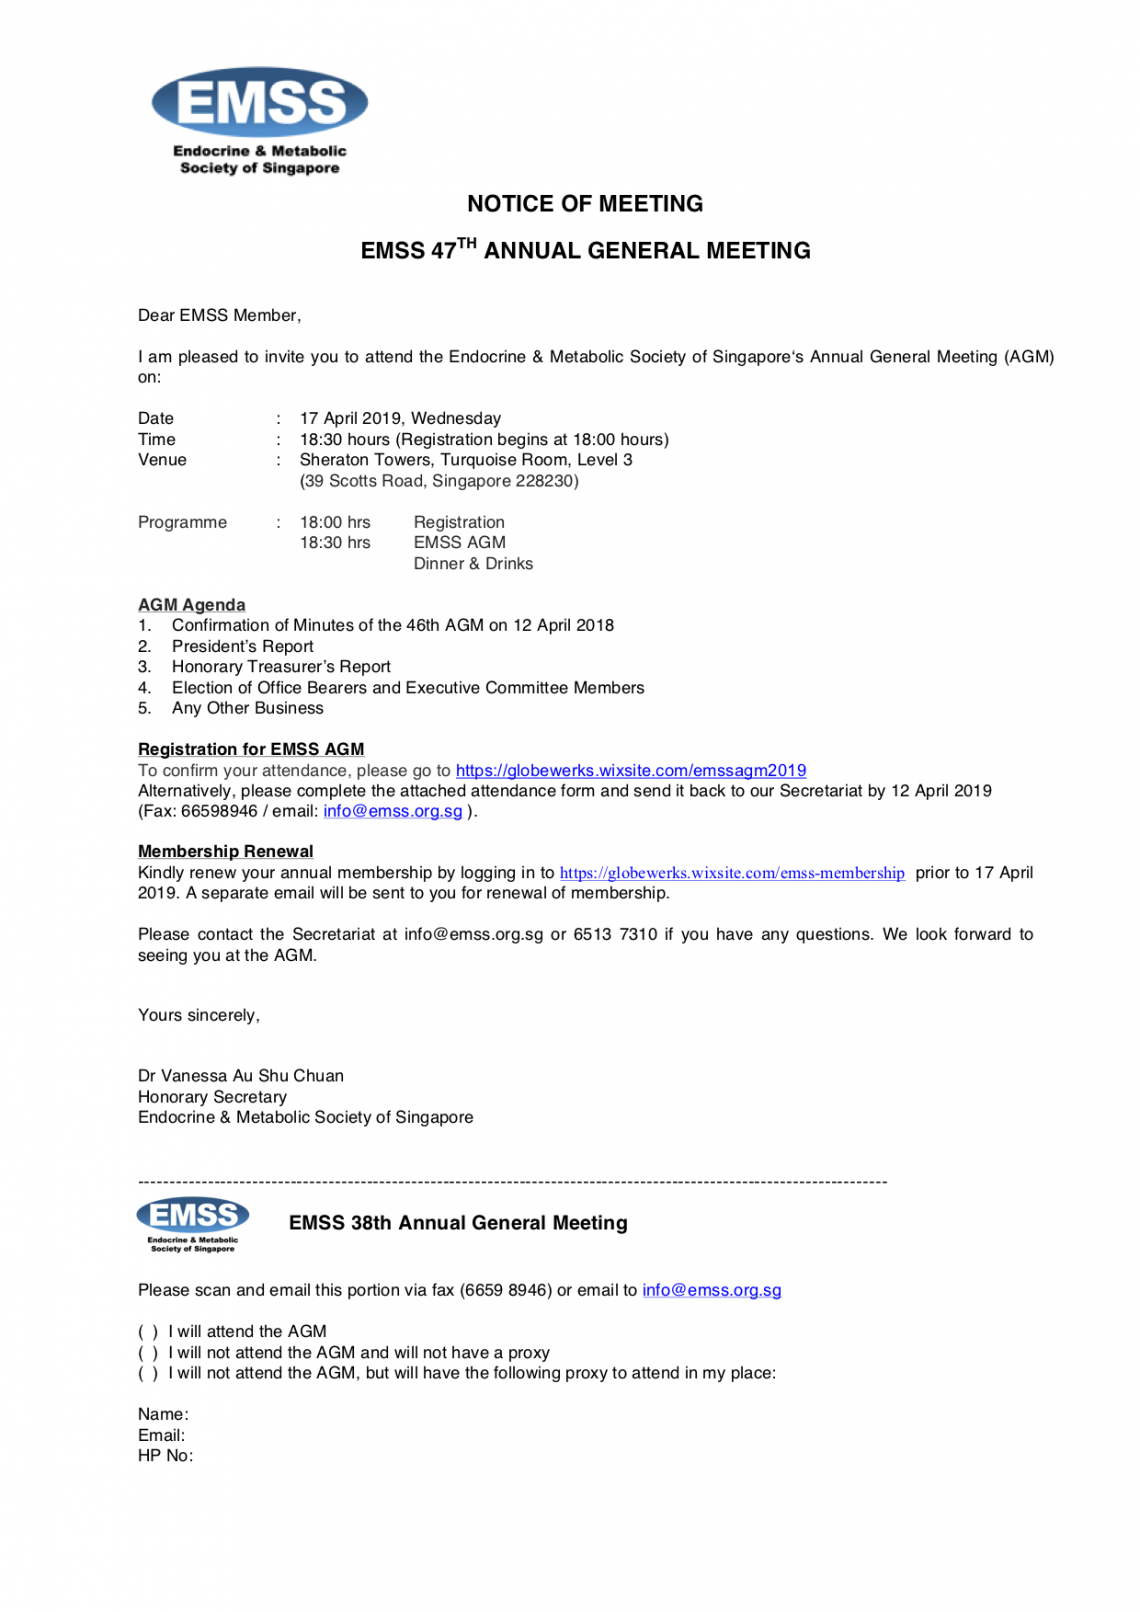 EMSS 47th Annual General Meeting   Endocrine and Metabolic